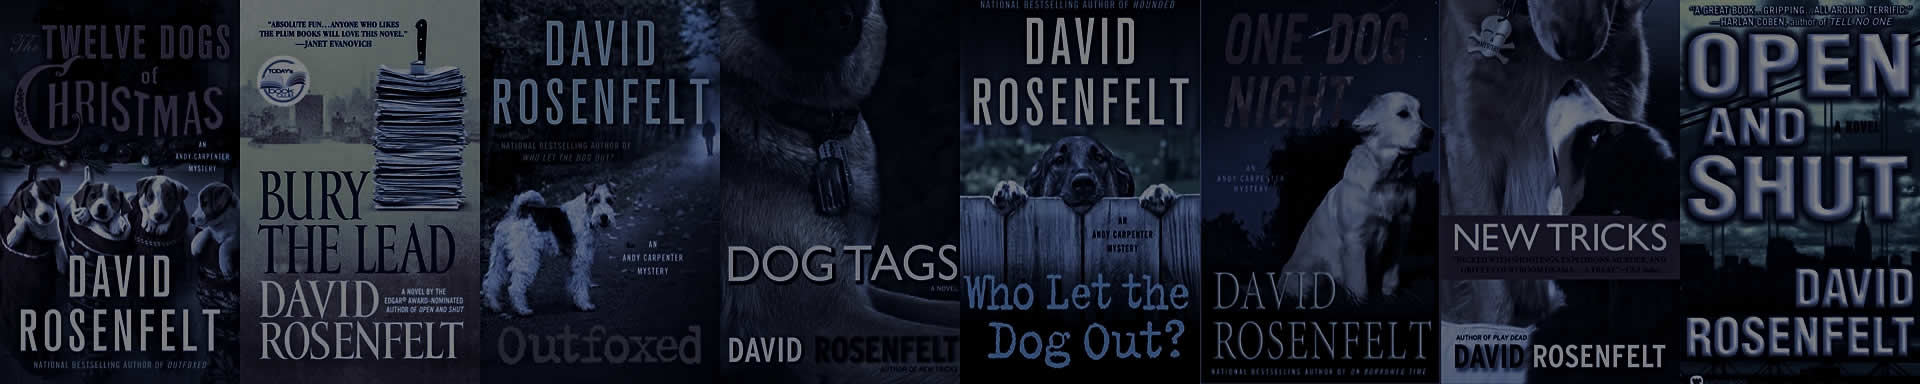 Andy Carpenter Books By David Rosenfelt